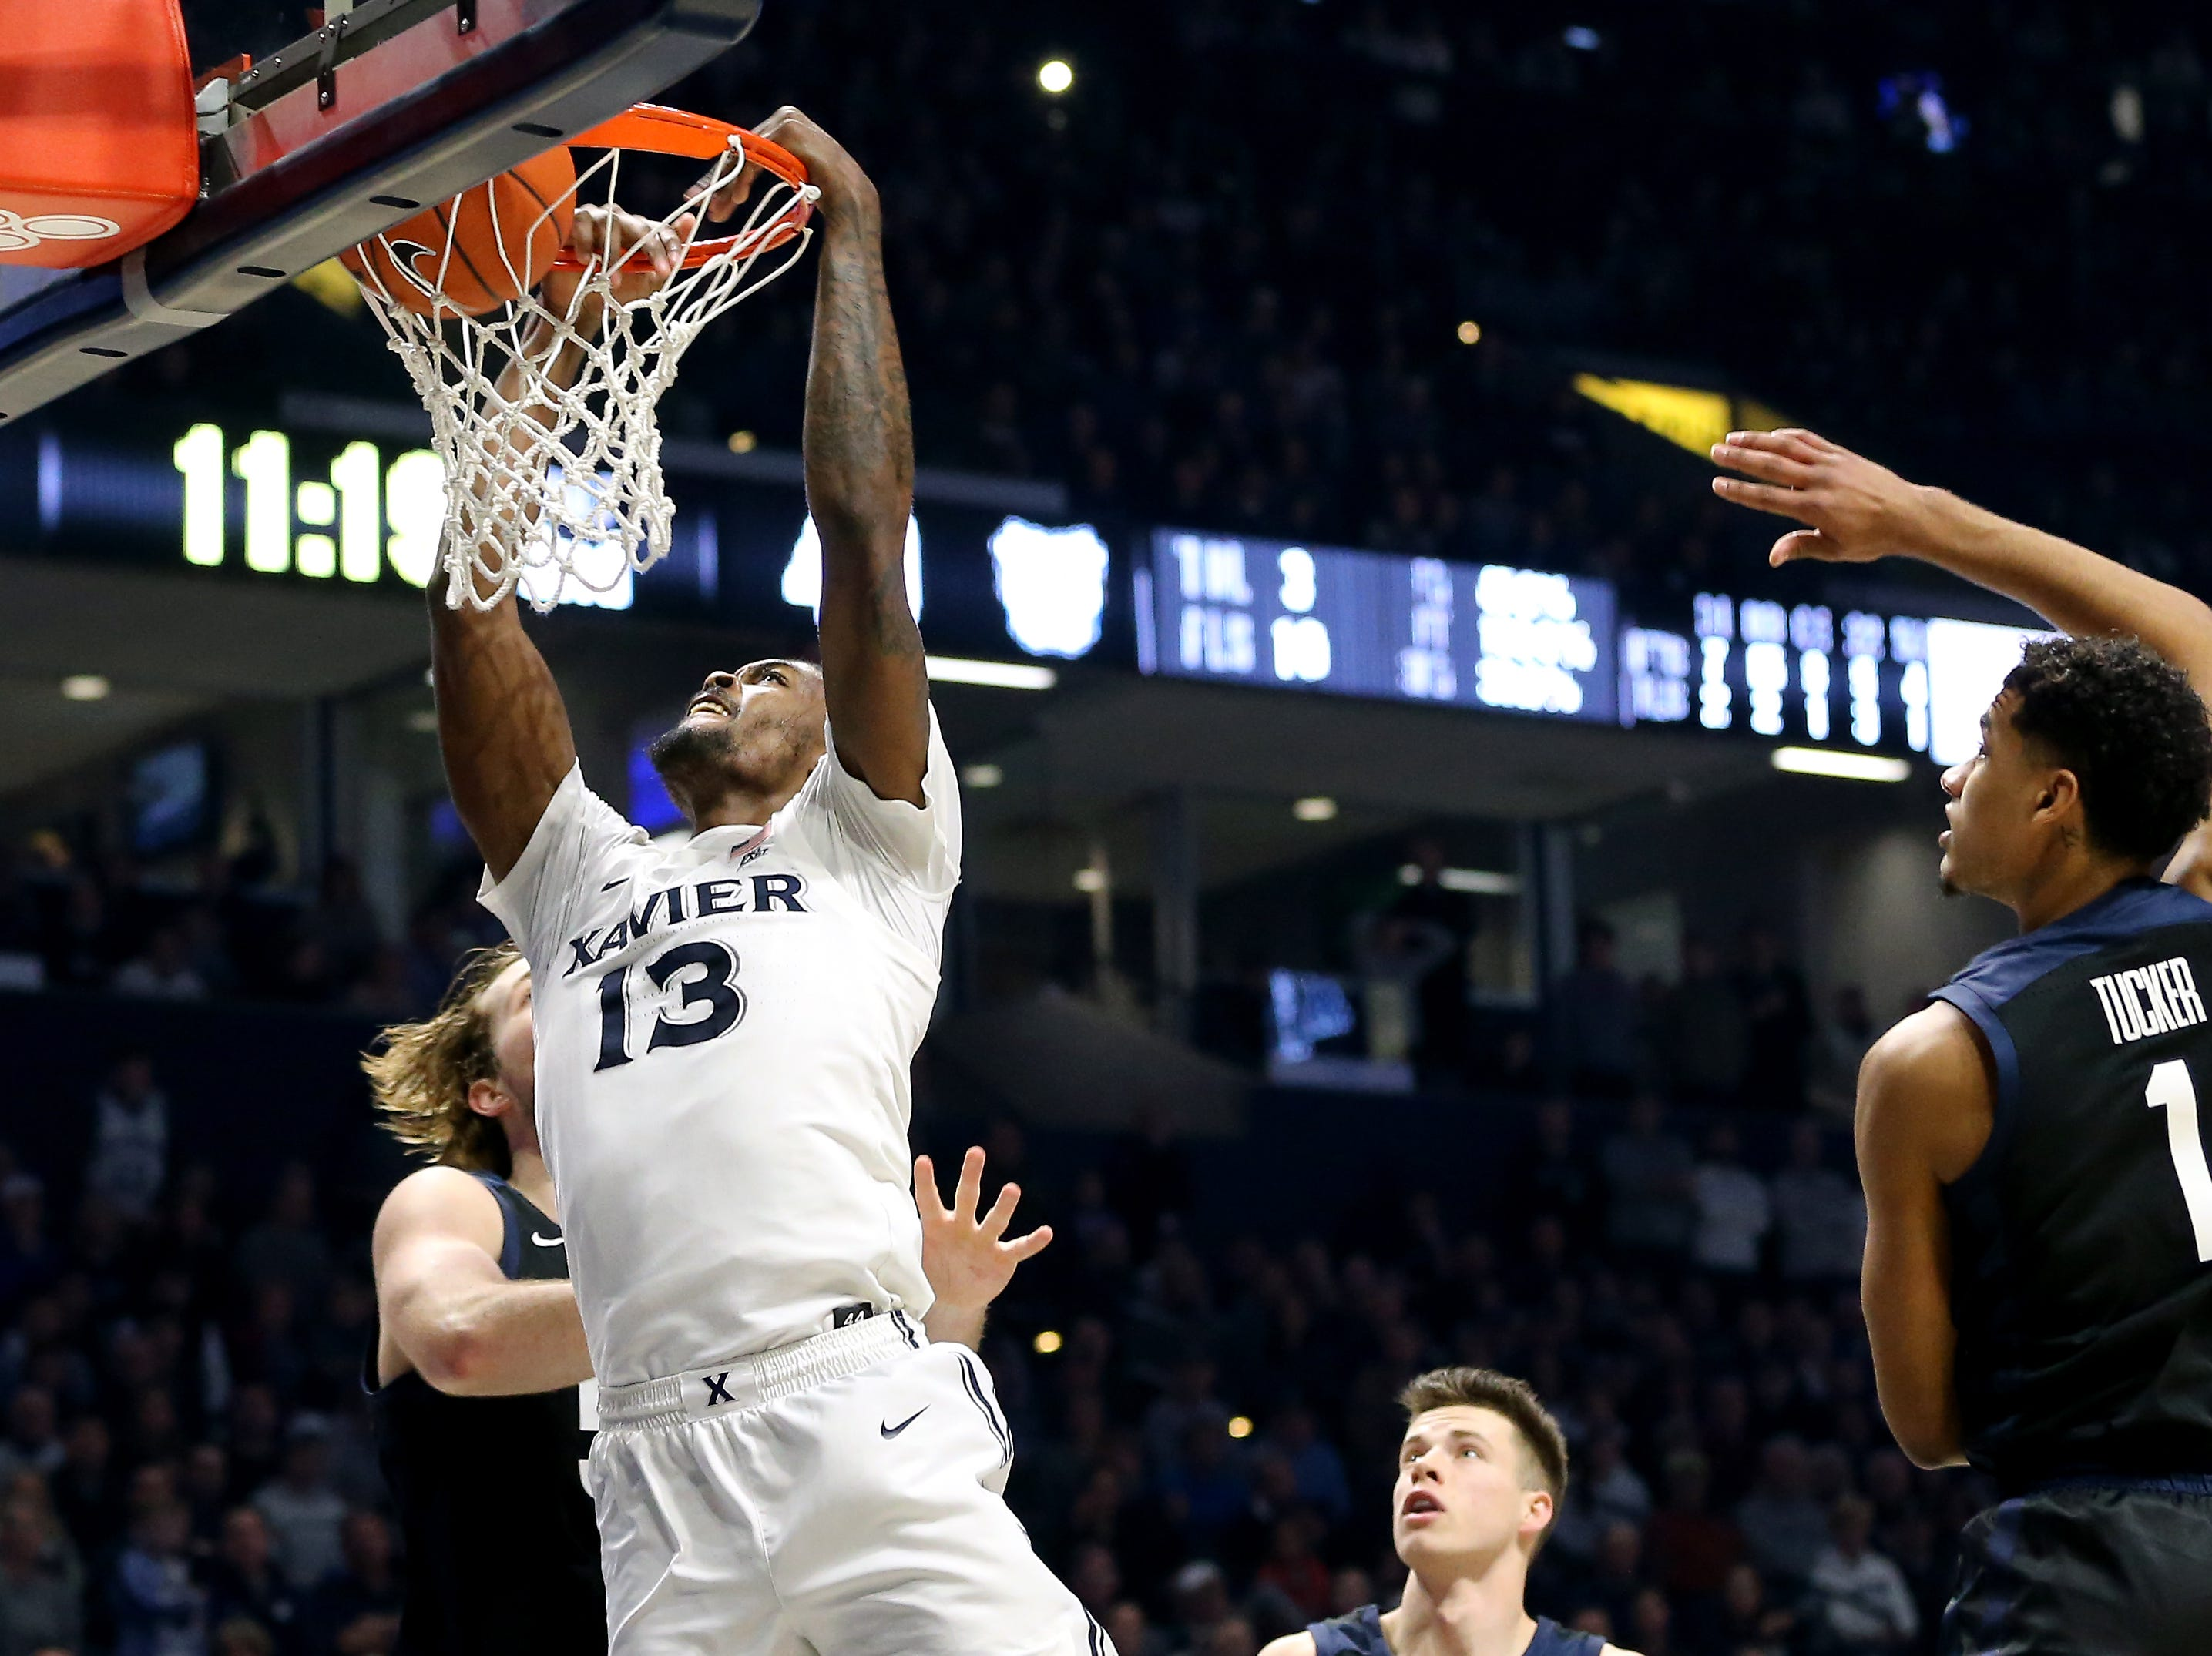 Xavier Musketeers forward Naji Marshall (13) dunks over Butler Bulldogs forward Joey Brunk (50) in the second half of an NCAA college basketball game, Sunday, Jan. 13, 2019, at Cintas Center in Cincinnati. Xavier Musketeers won 70-69.